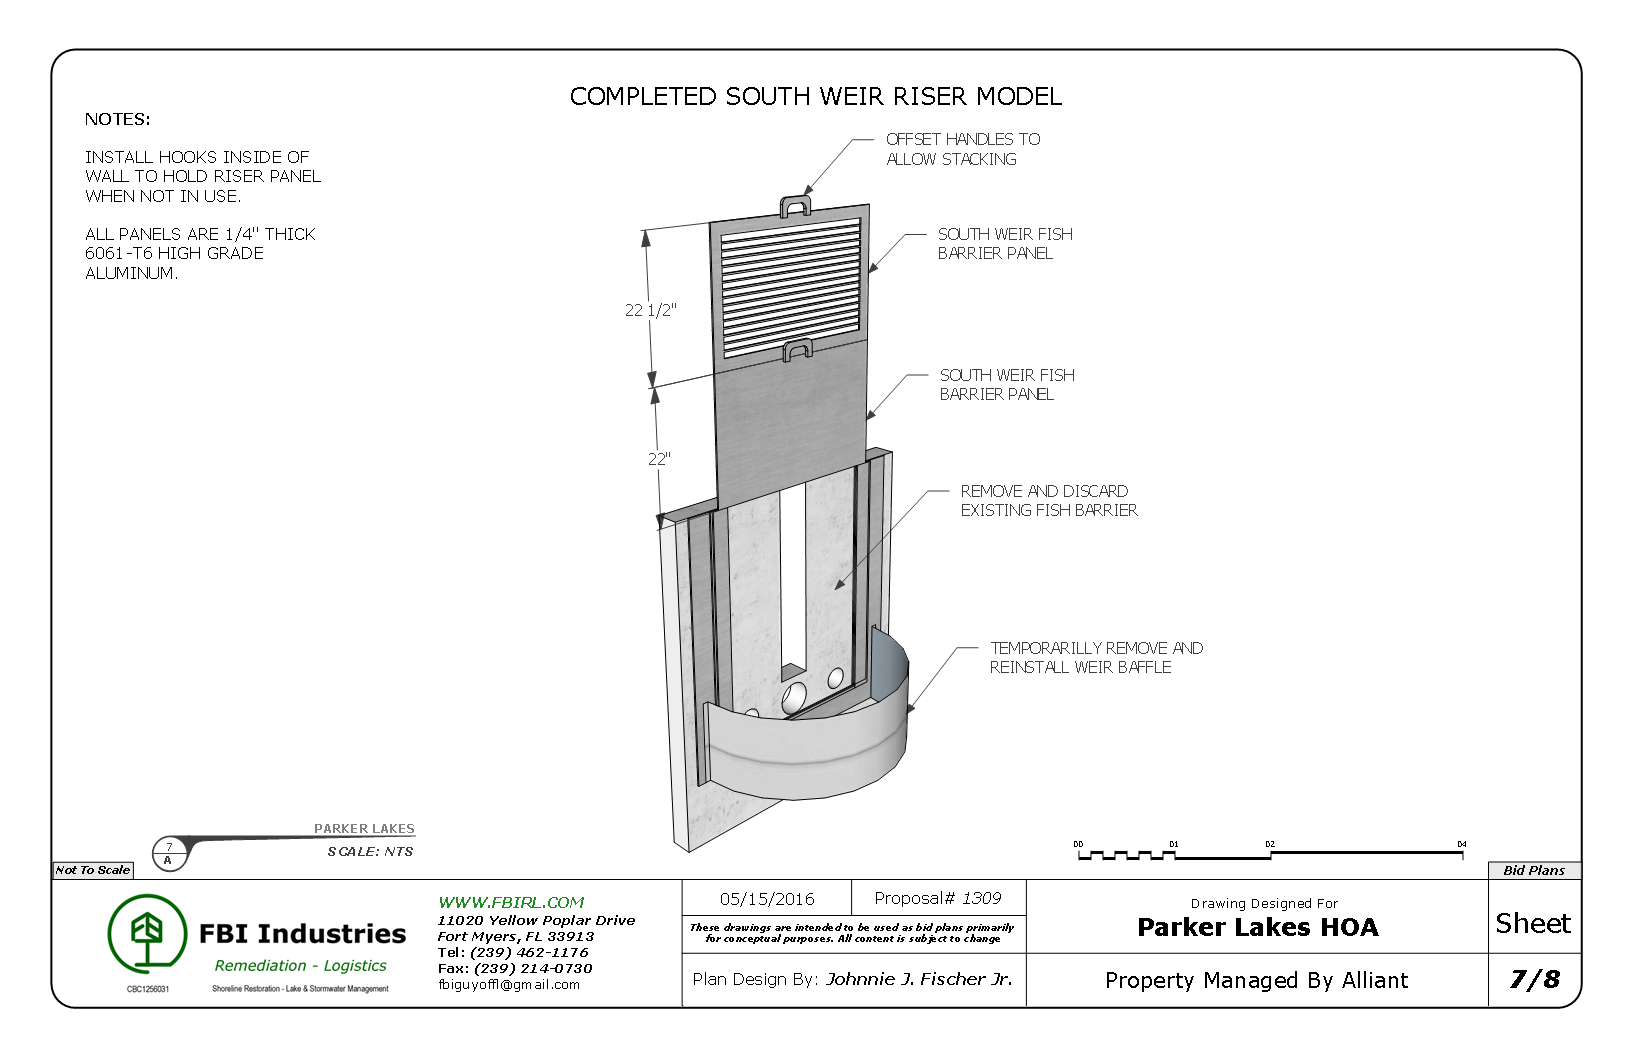 Proposal#1309_Parker Lakes Weir Presentation_Photos_7.png